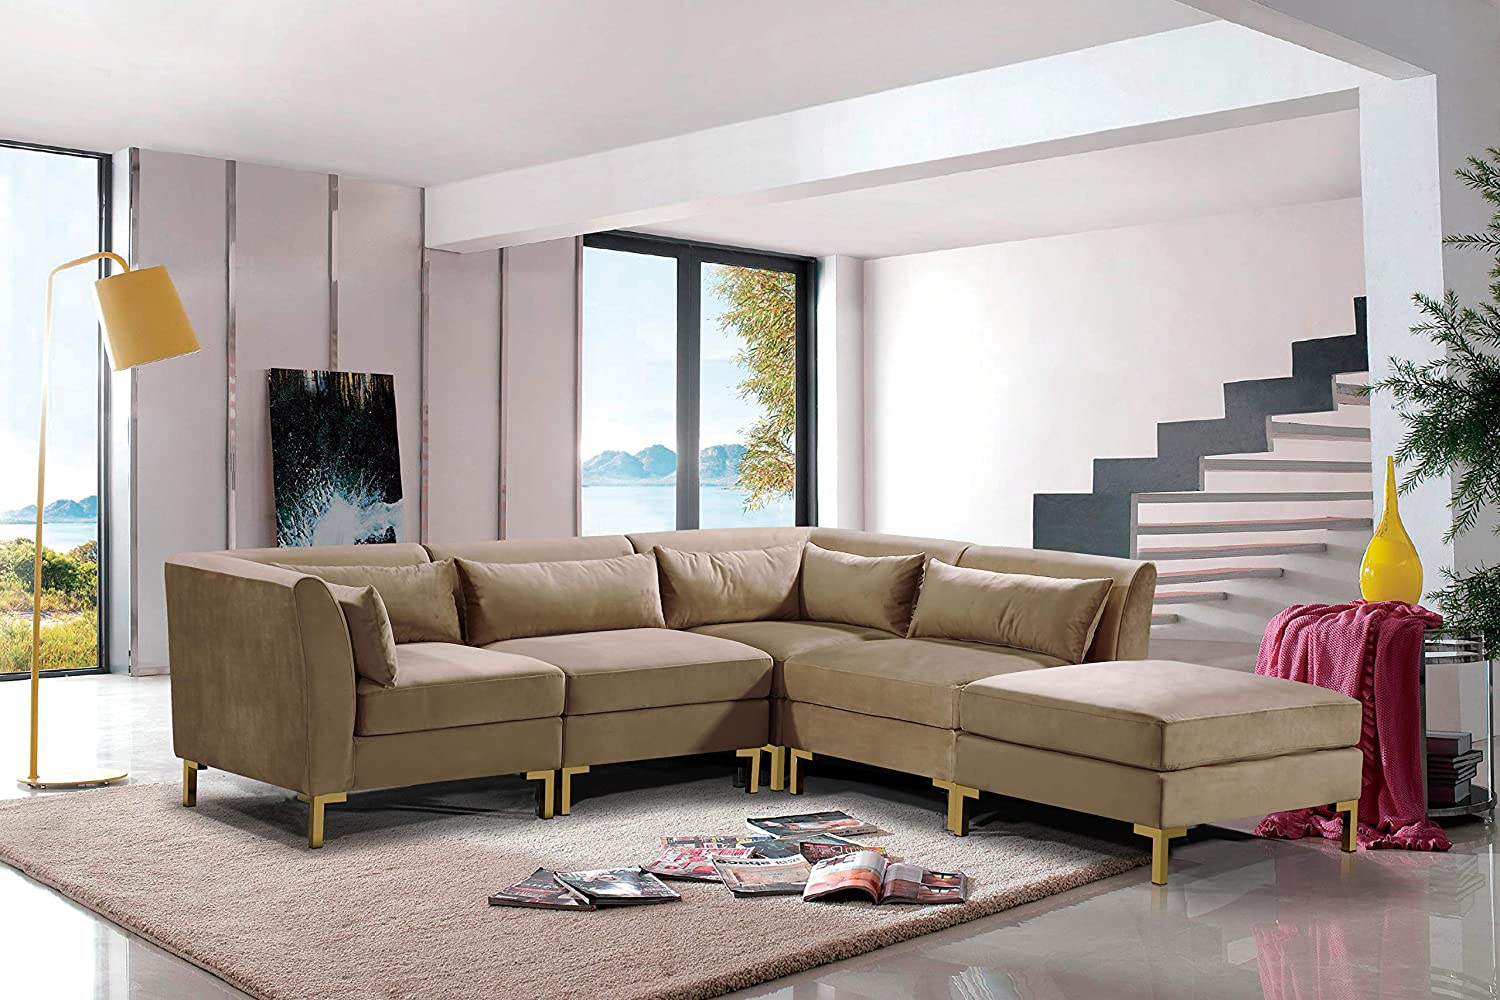 Tremendous Iconic Home Fsa9260 An Girardi Modular Chaise Sectional Sofa Velvet Upholstered Solid Gold Tone Metal Y Leg With 6 Throw Pillows Modern Contemporary Pabps2019 Chair Design Images Pabps2019Com